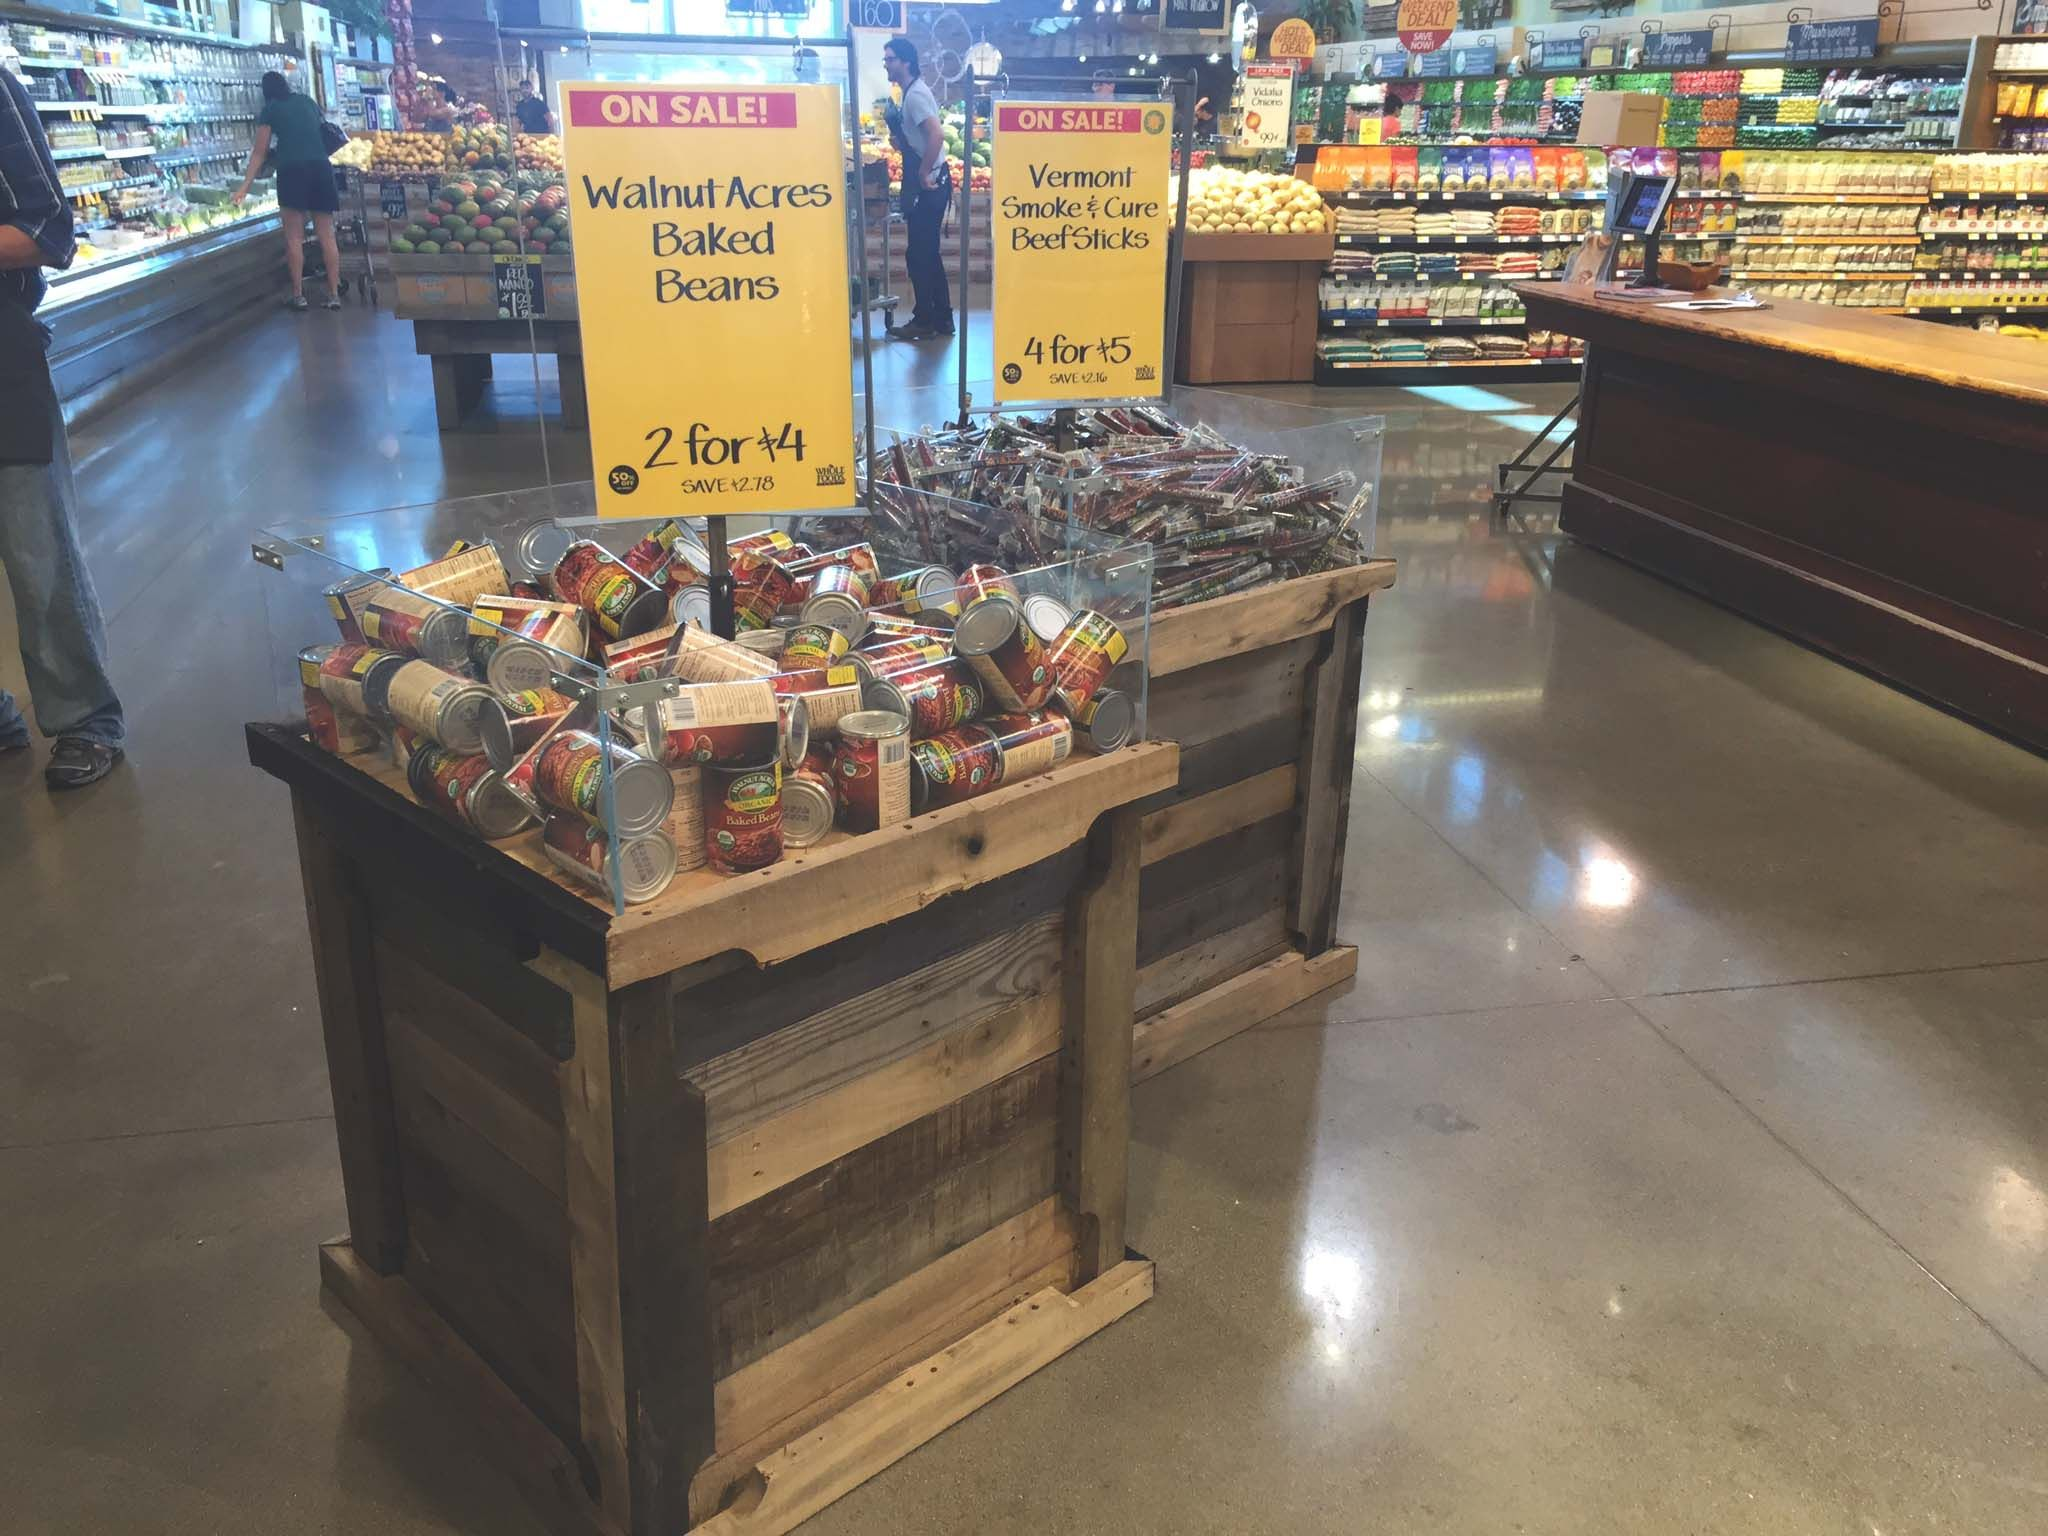 Sale display for Whole Foods created with reclaimed pallet wood